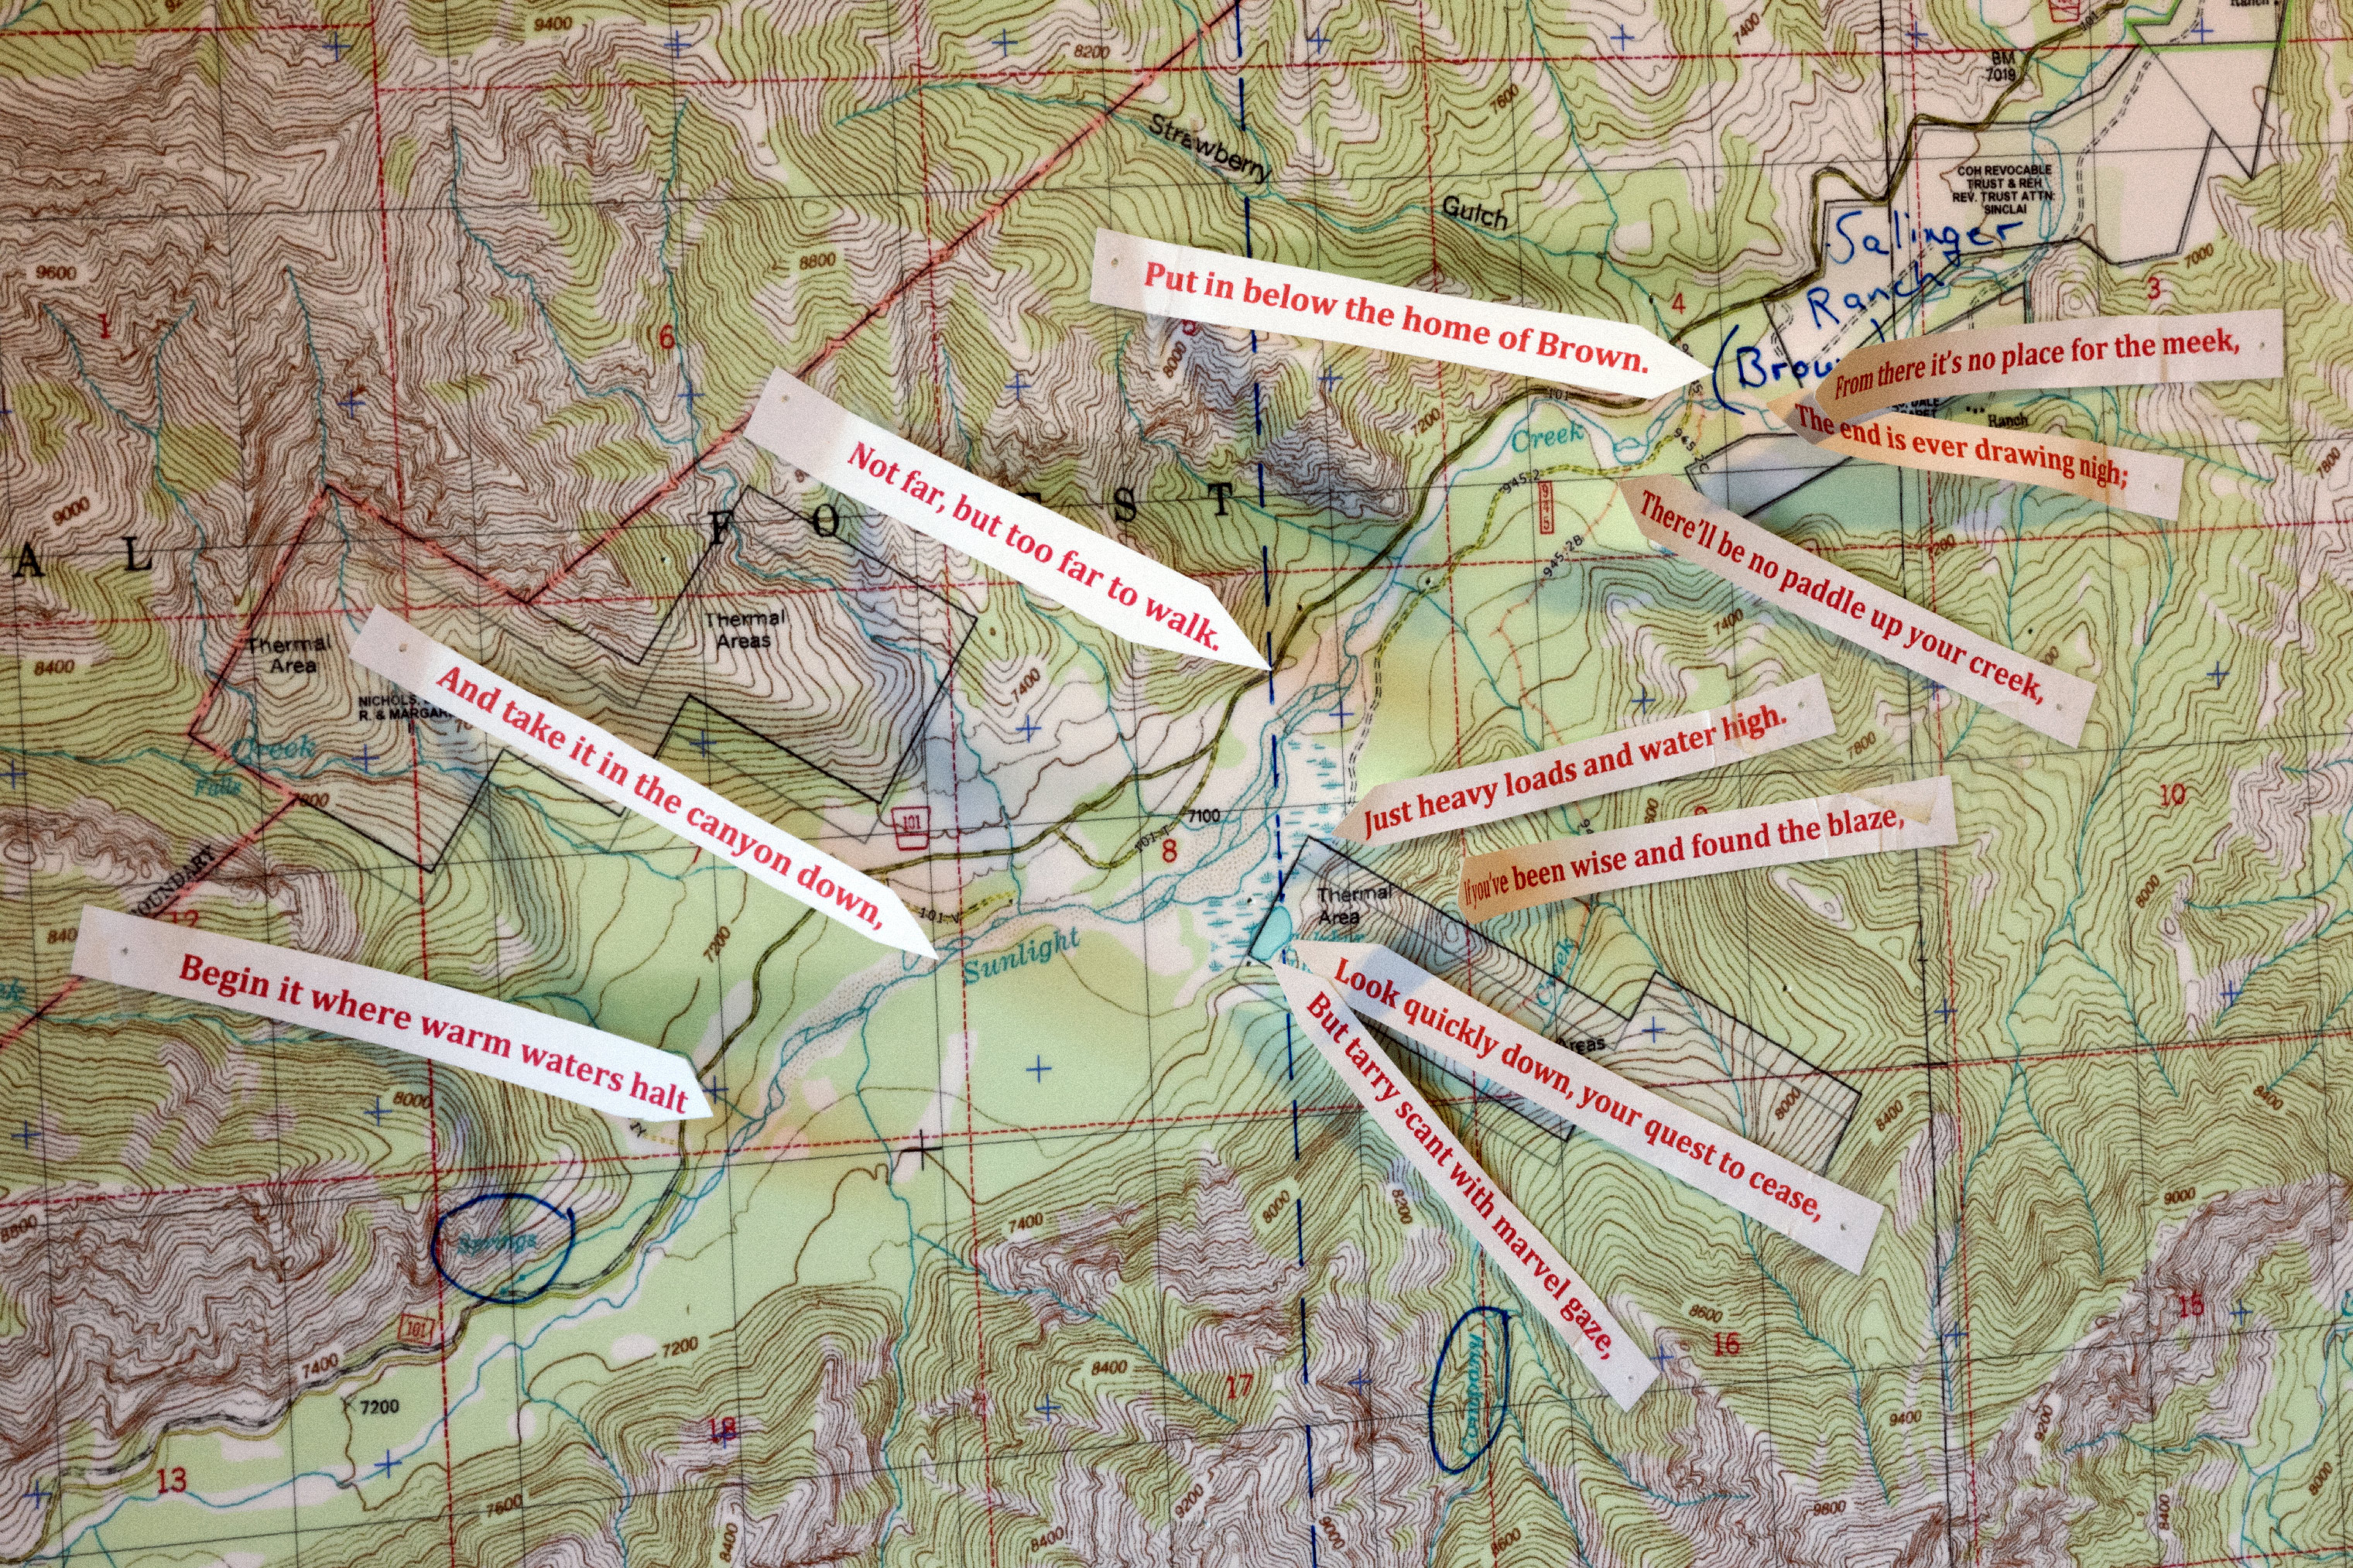 Map of Cynthia Meachum's search area in Wyoming marked with clues from Forrest Fenn's poem in the  war room  of her home in Rio Rancho, NM, May 29, 2019.